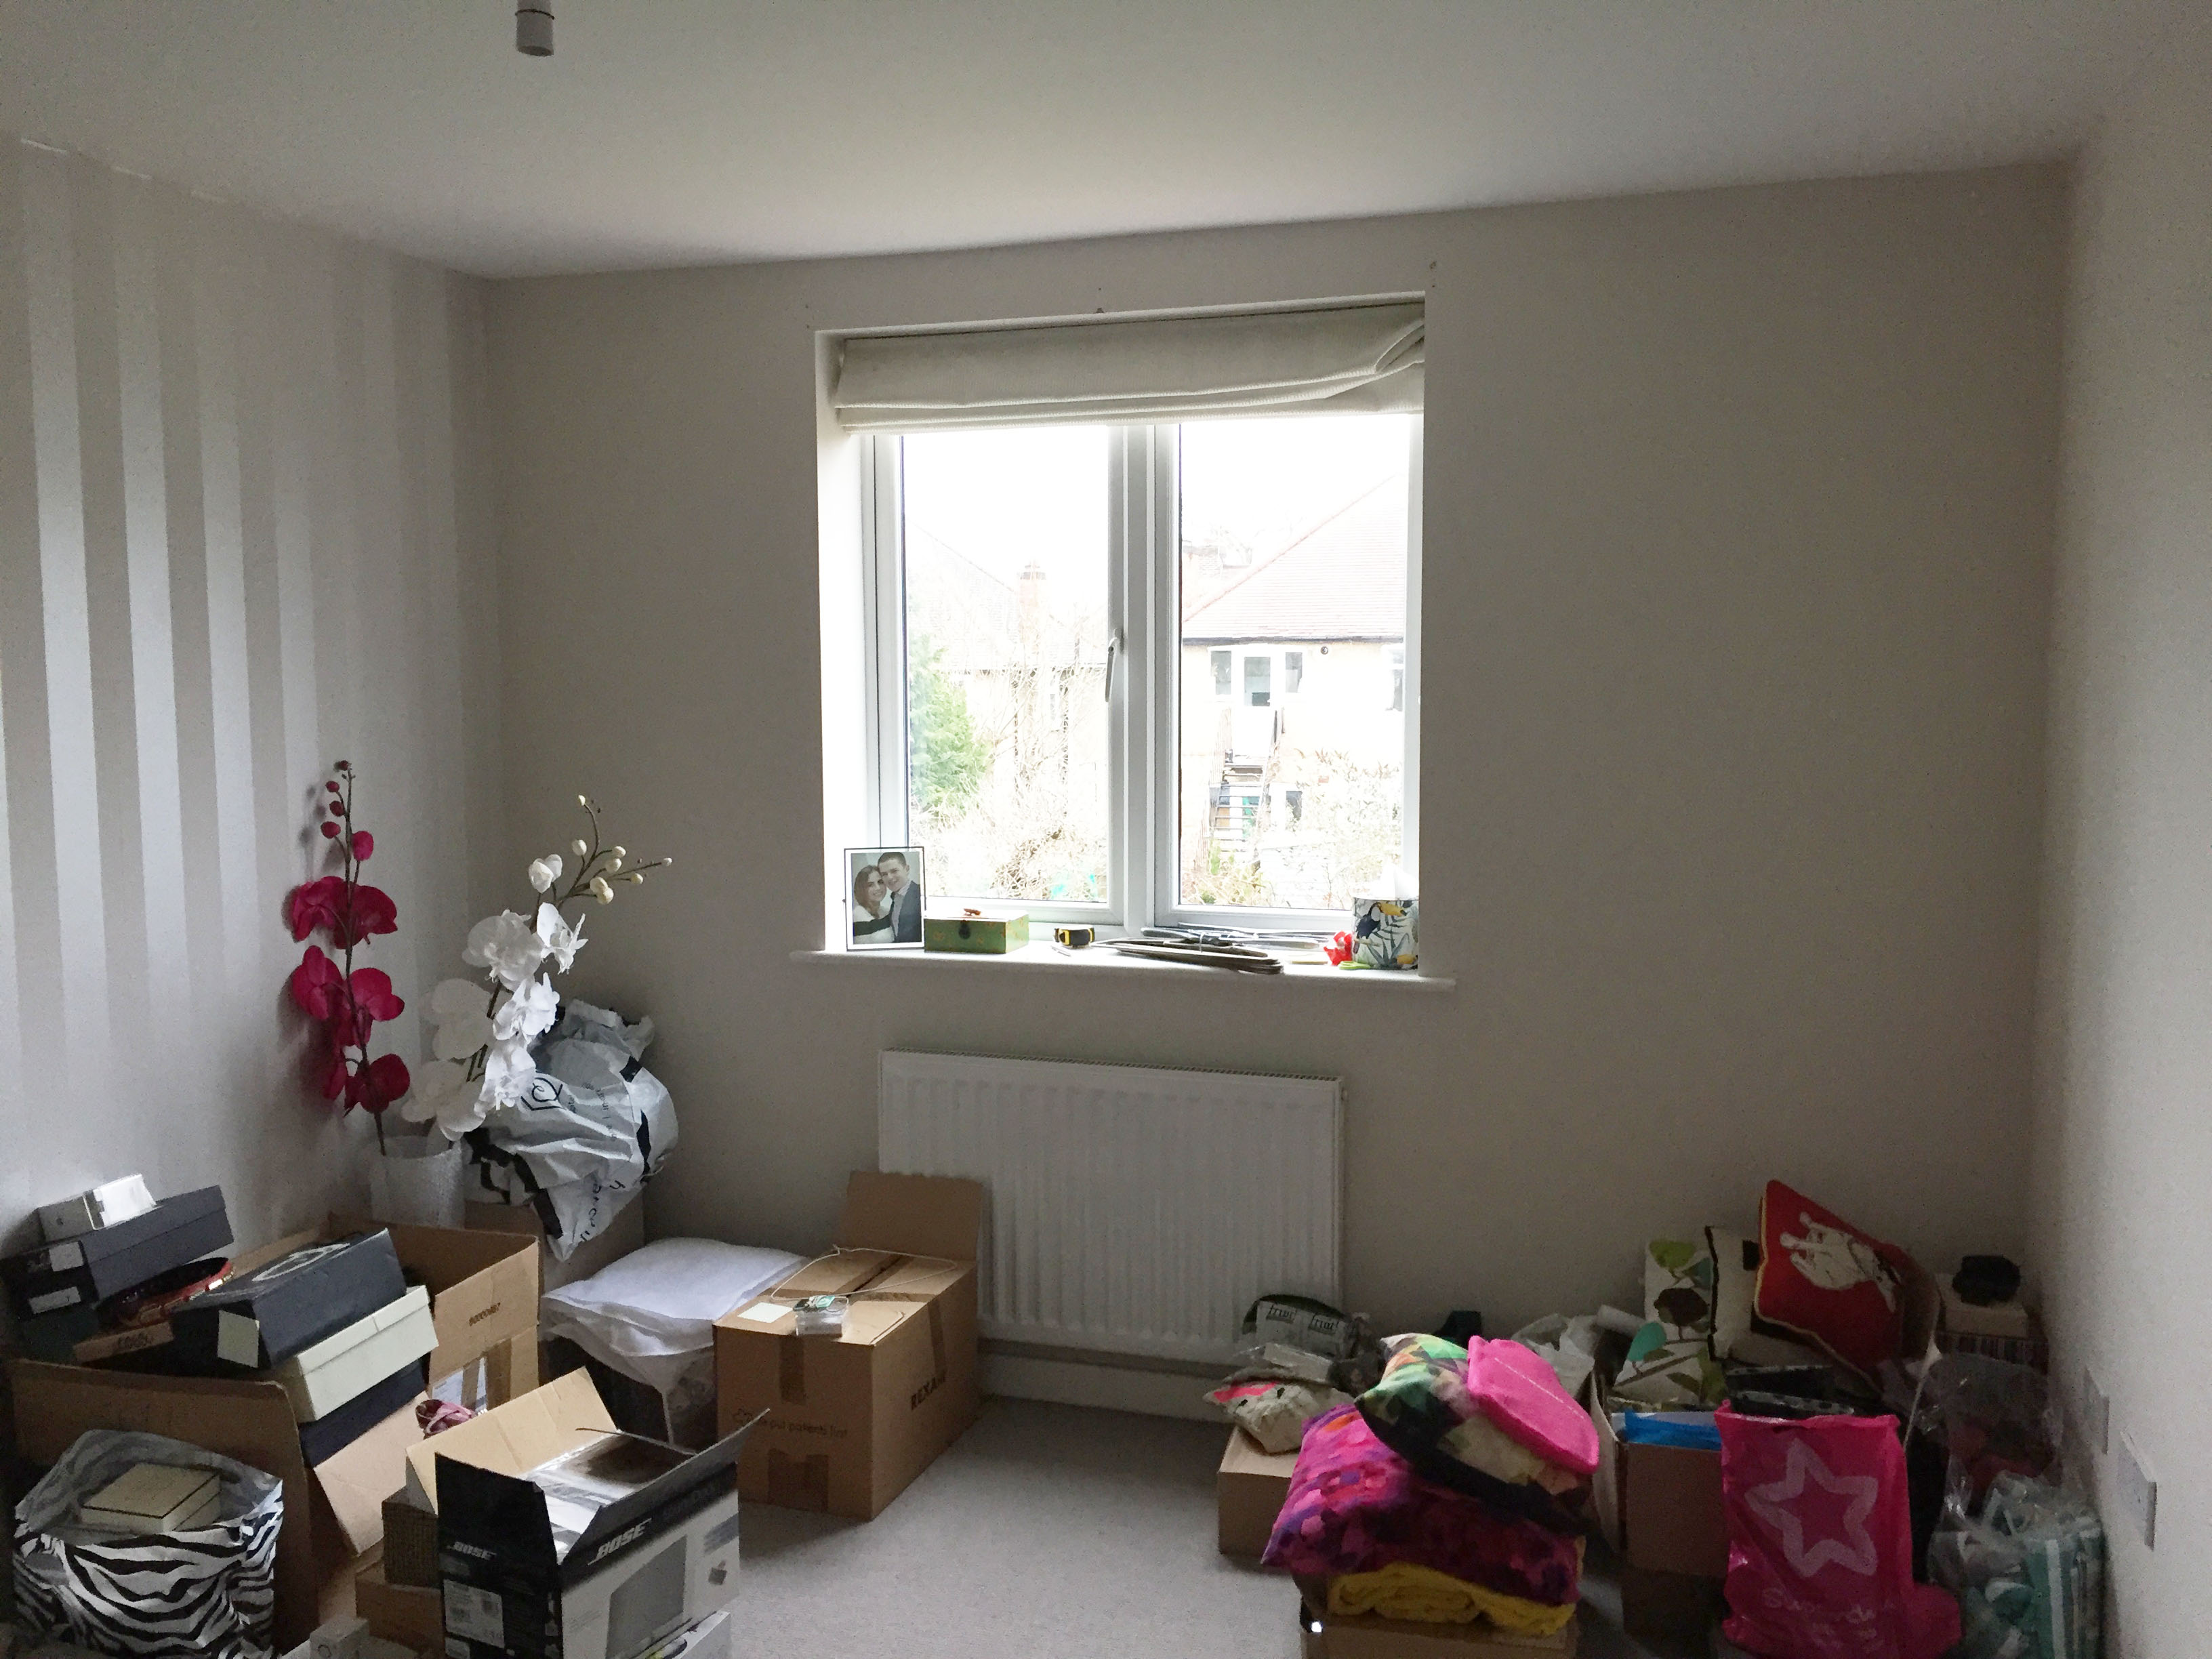 A photo of the room before the baby arrived - a spare room